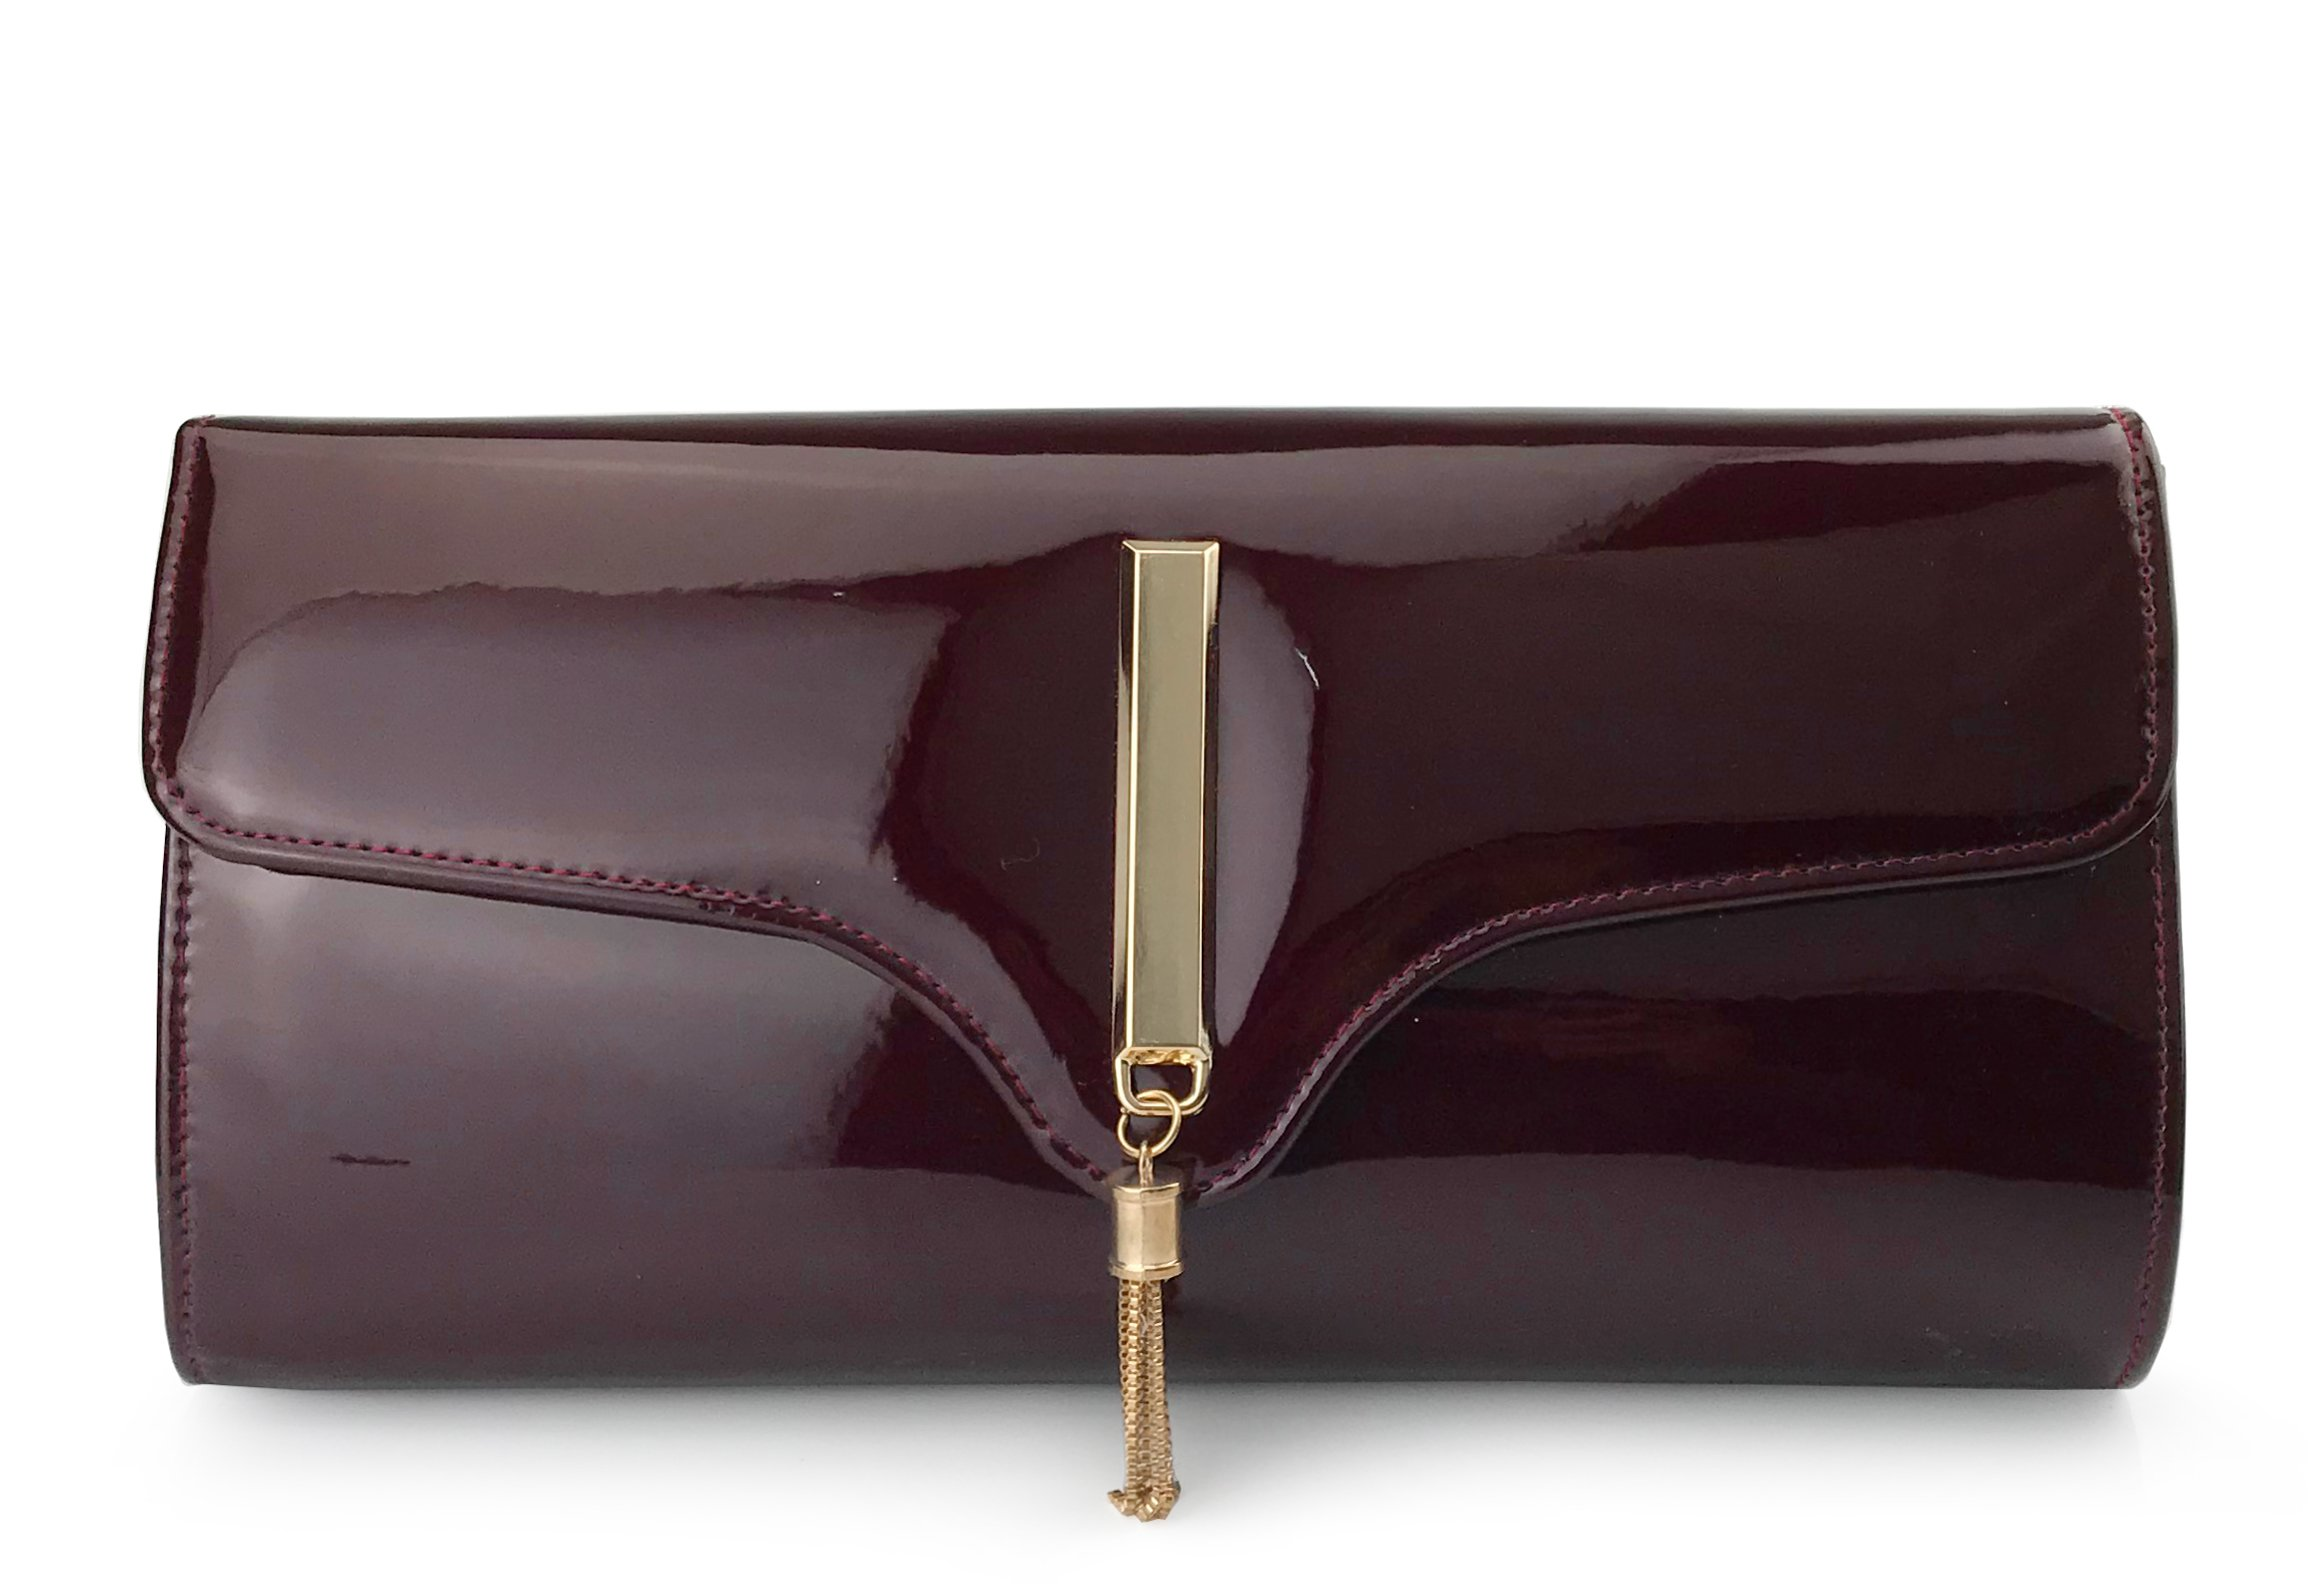 Tassel Women's Glossy Evening Clutch With Chain Strap Wedding Cocktail Party Concert Purse (Burgundy)